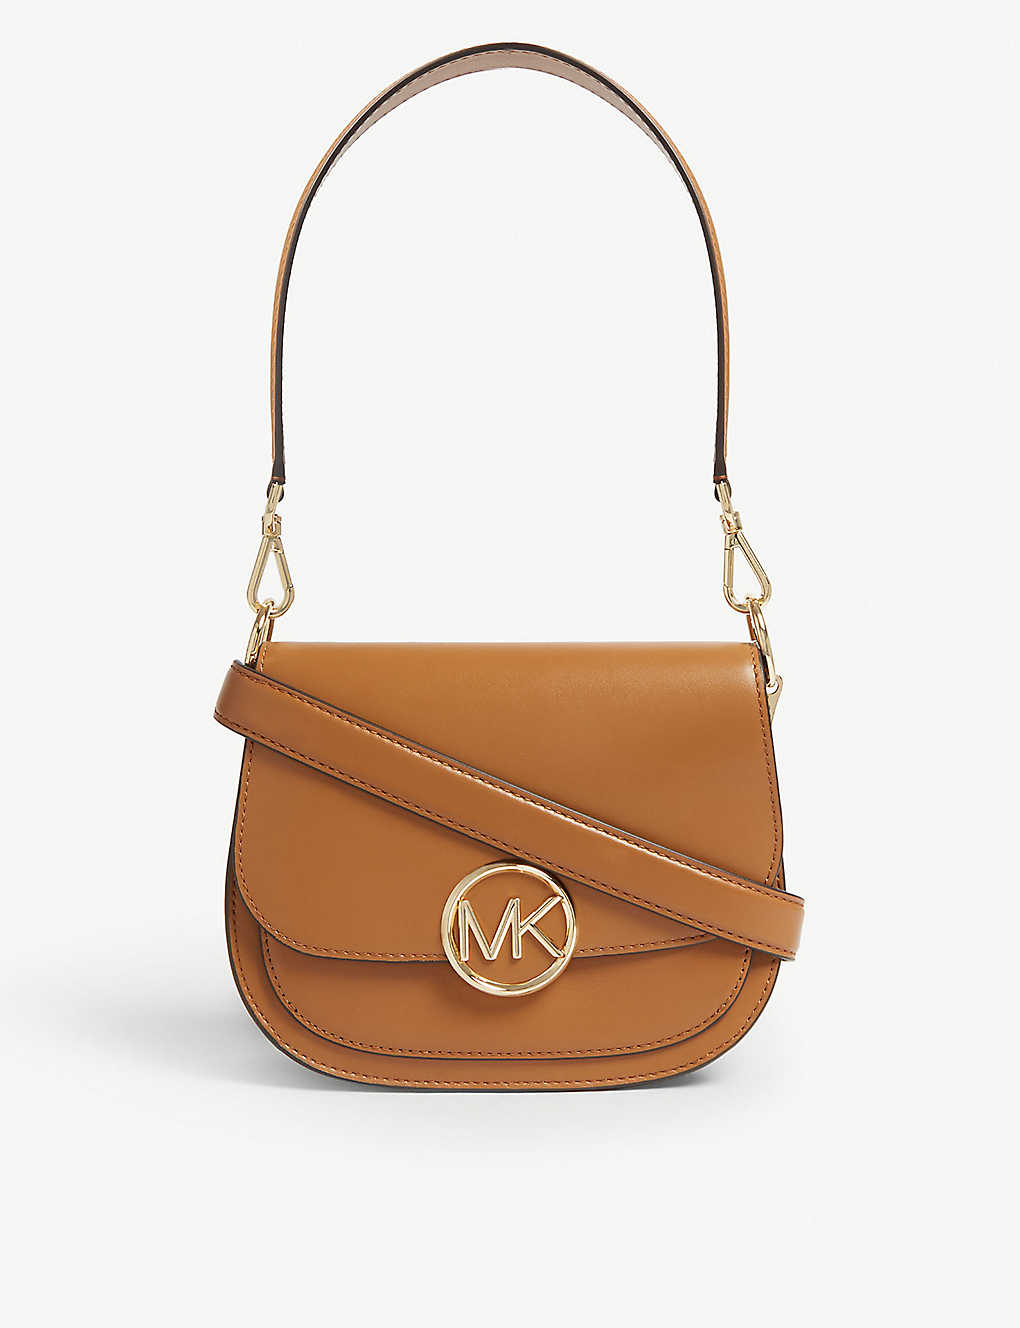 5d54a97745094a MICHAEL MICHAEL KORS - Lillie leather saddle bag | Selfridges.com